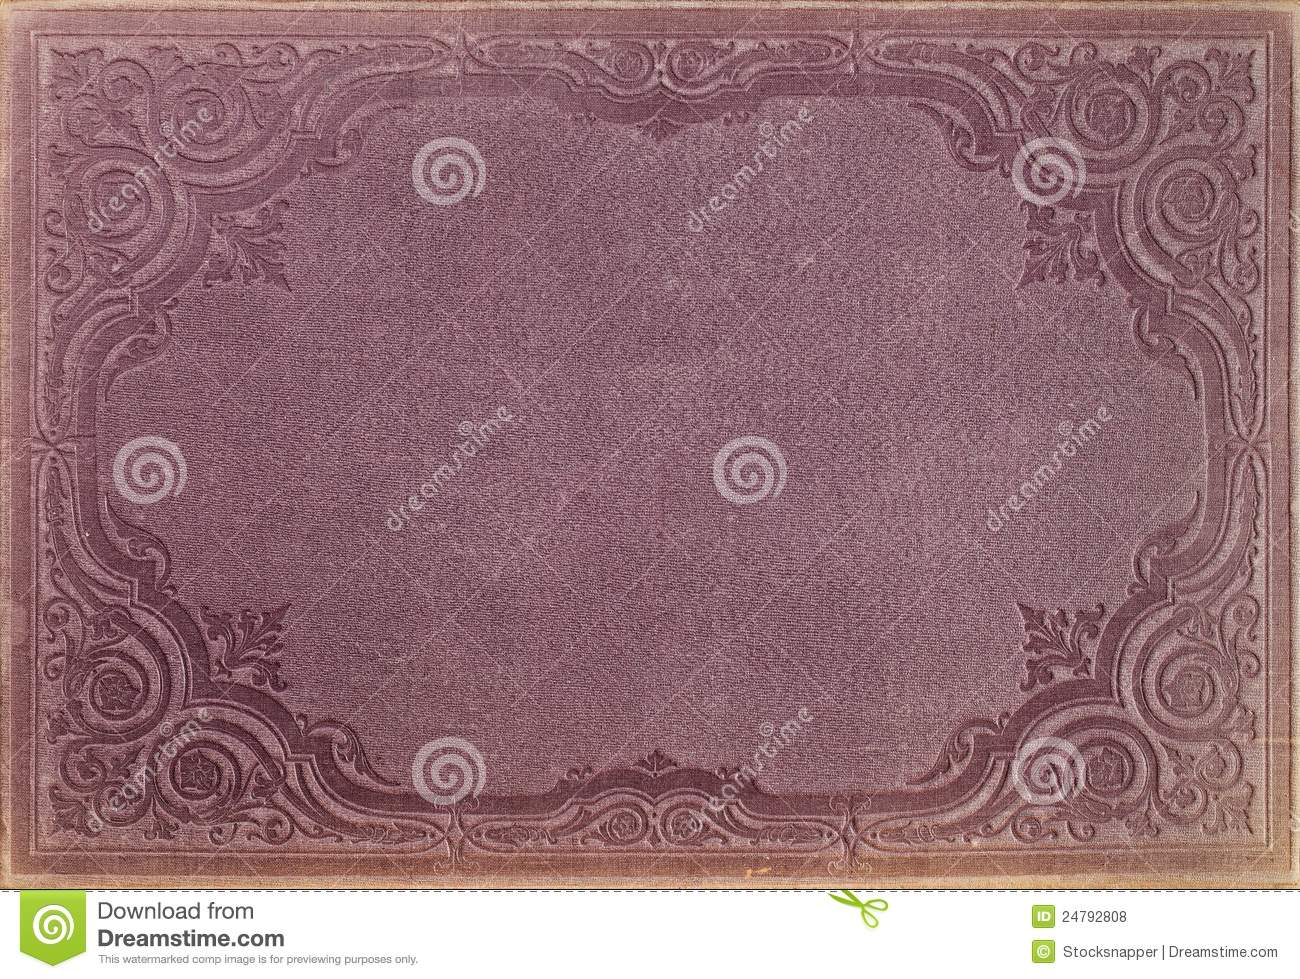 Book Cover Images Royalty Free : Vintage book cover stock photo image of ornaments frame